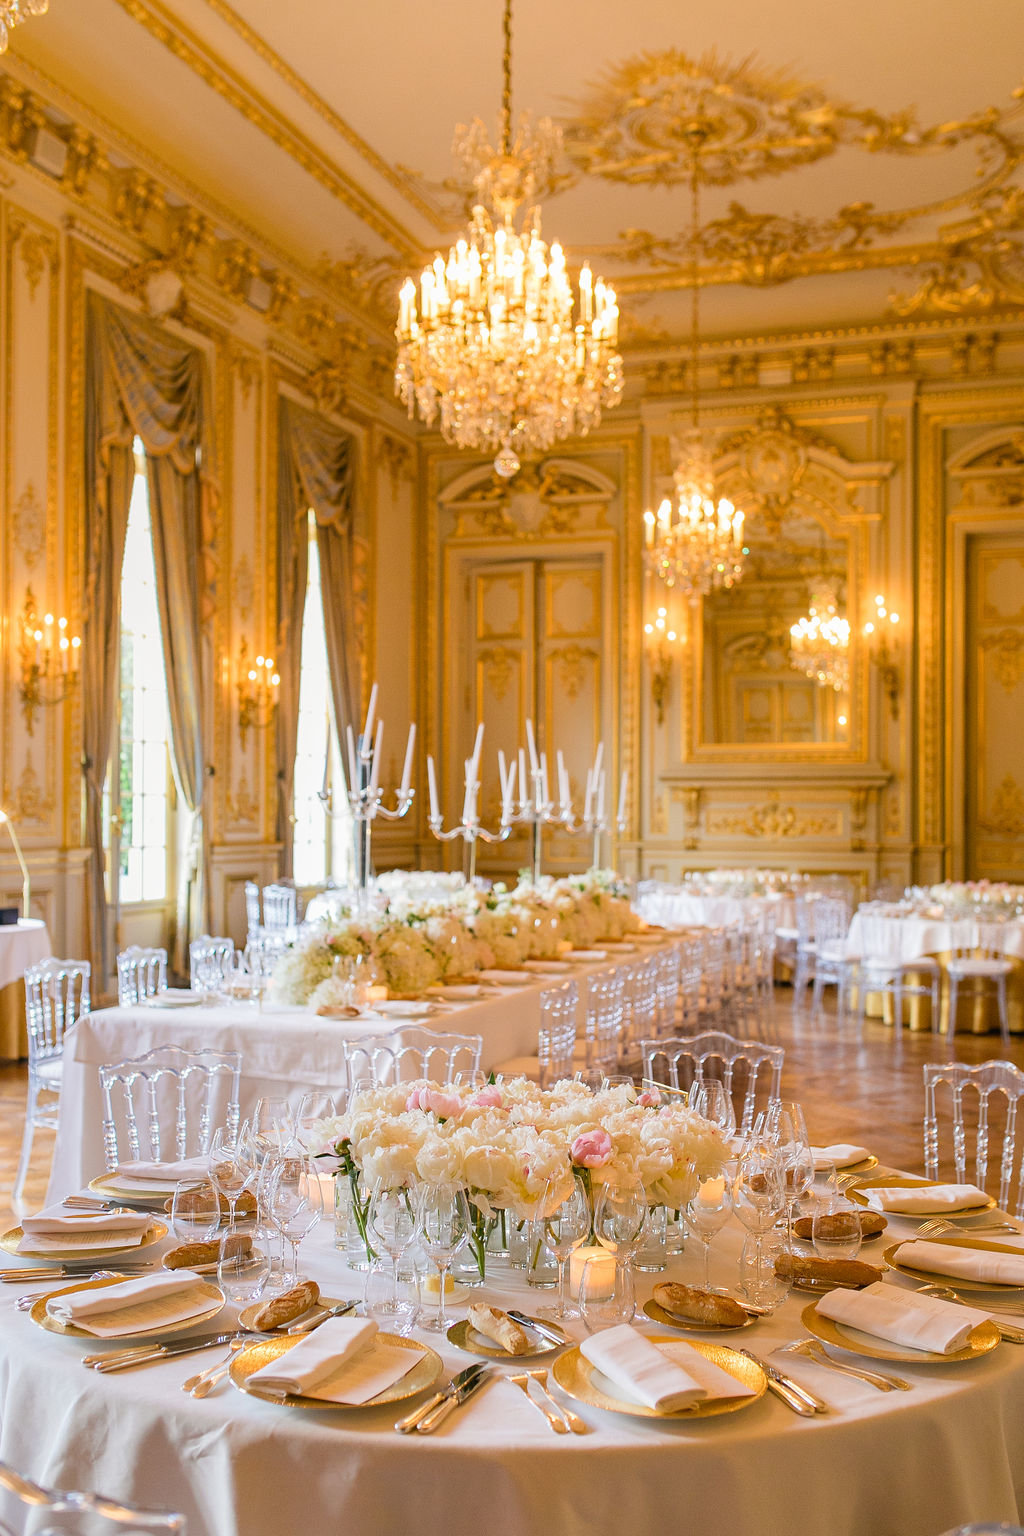 paris-wedding-photographer-shangri-la-roberta-facchini-photography-968